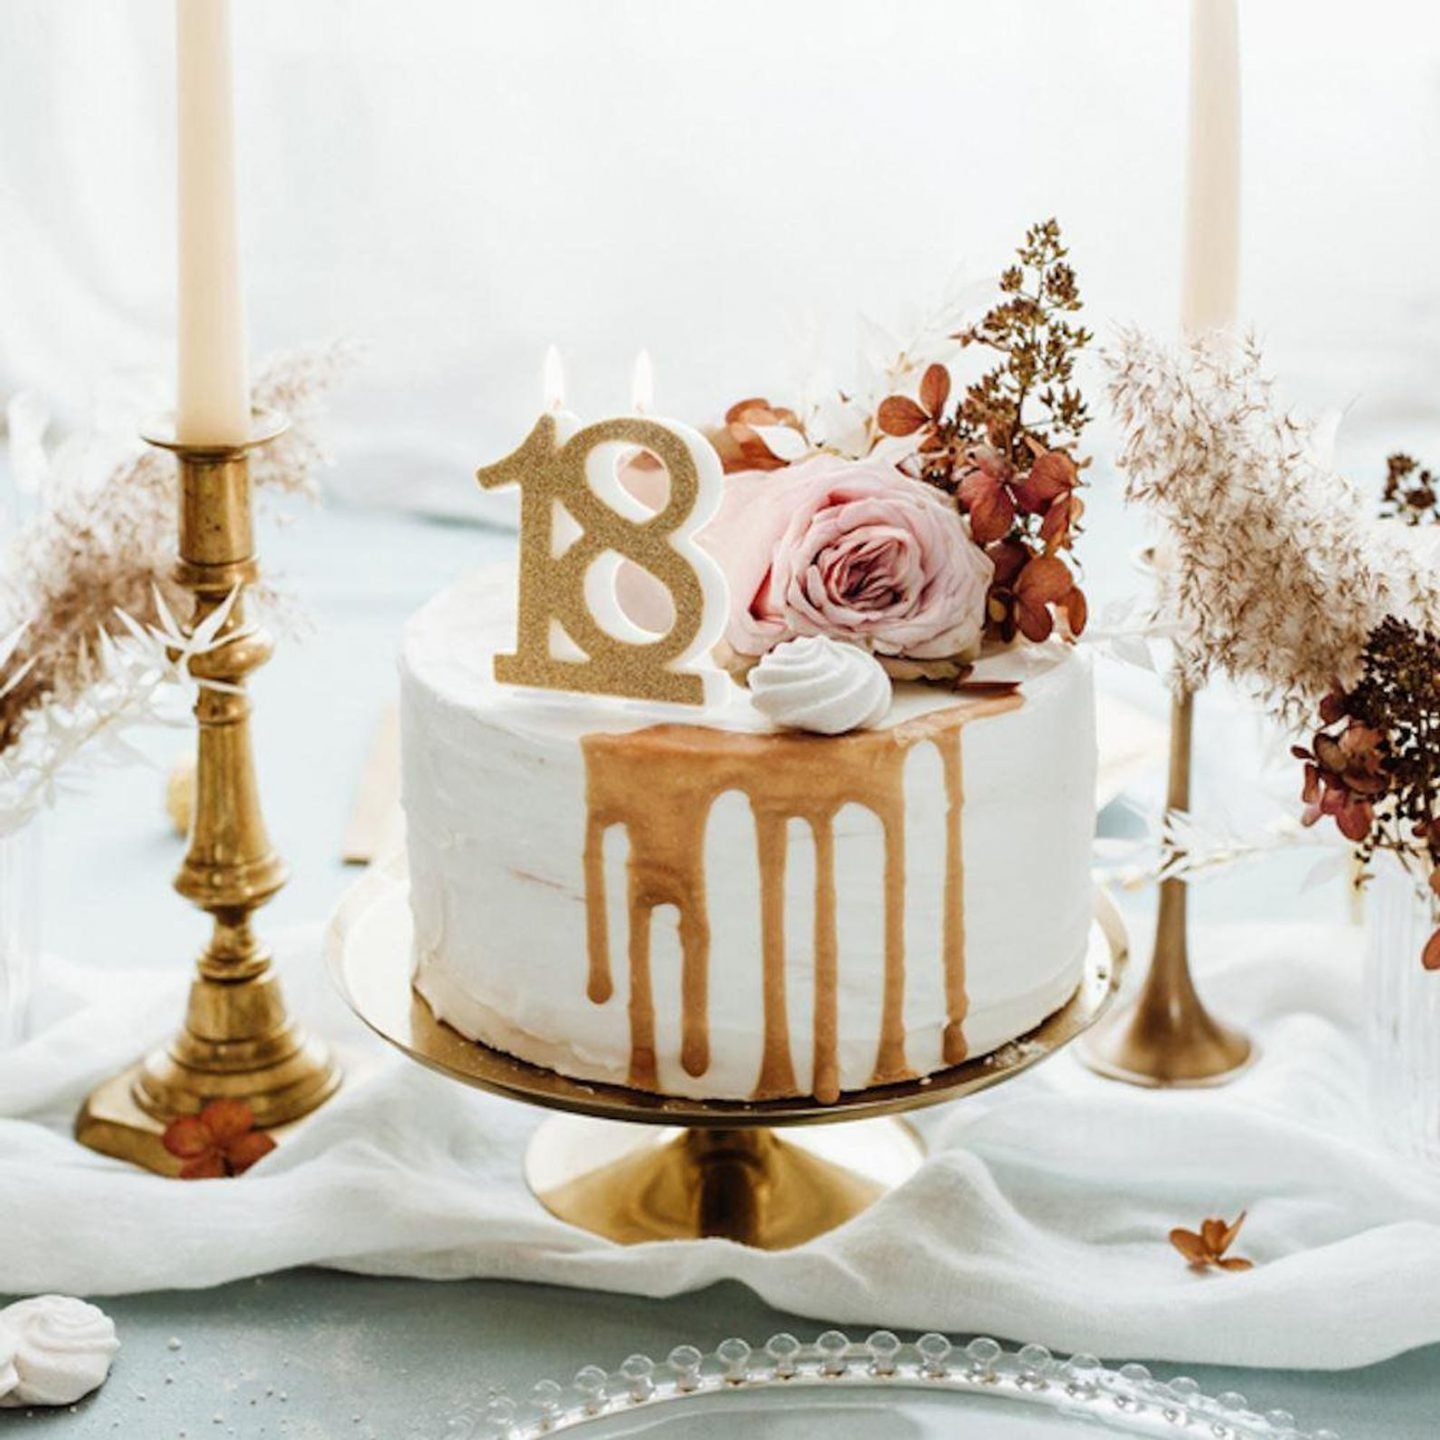 Gold cake decorated candle